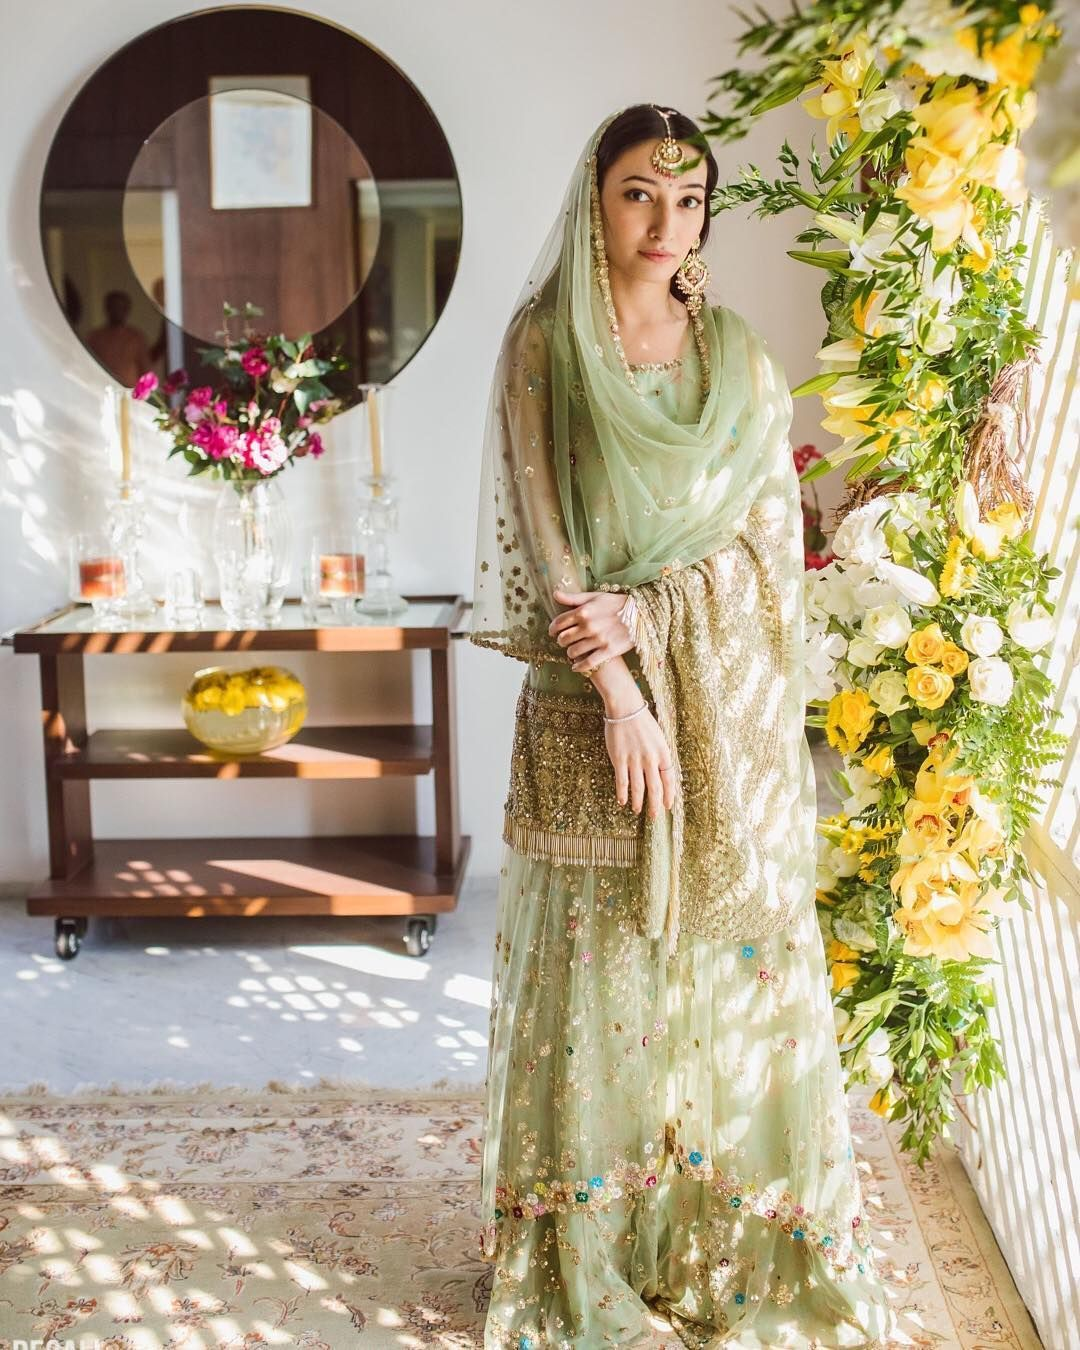 Bookmark These 25 Bridal Mehendi Lehengas Right Now! #shararadesigns This sharara design will surely mesmerise your eyes!!!  Tune in to our blog for more ideas!! #lehenga #lehengadesigns #sharara #bridallehenga #lehengas #eventila #latesttrends #trendyfashion #fashion #trendylehengadesigns #shararadesigns